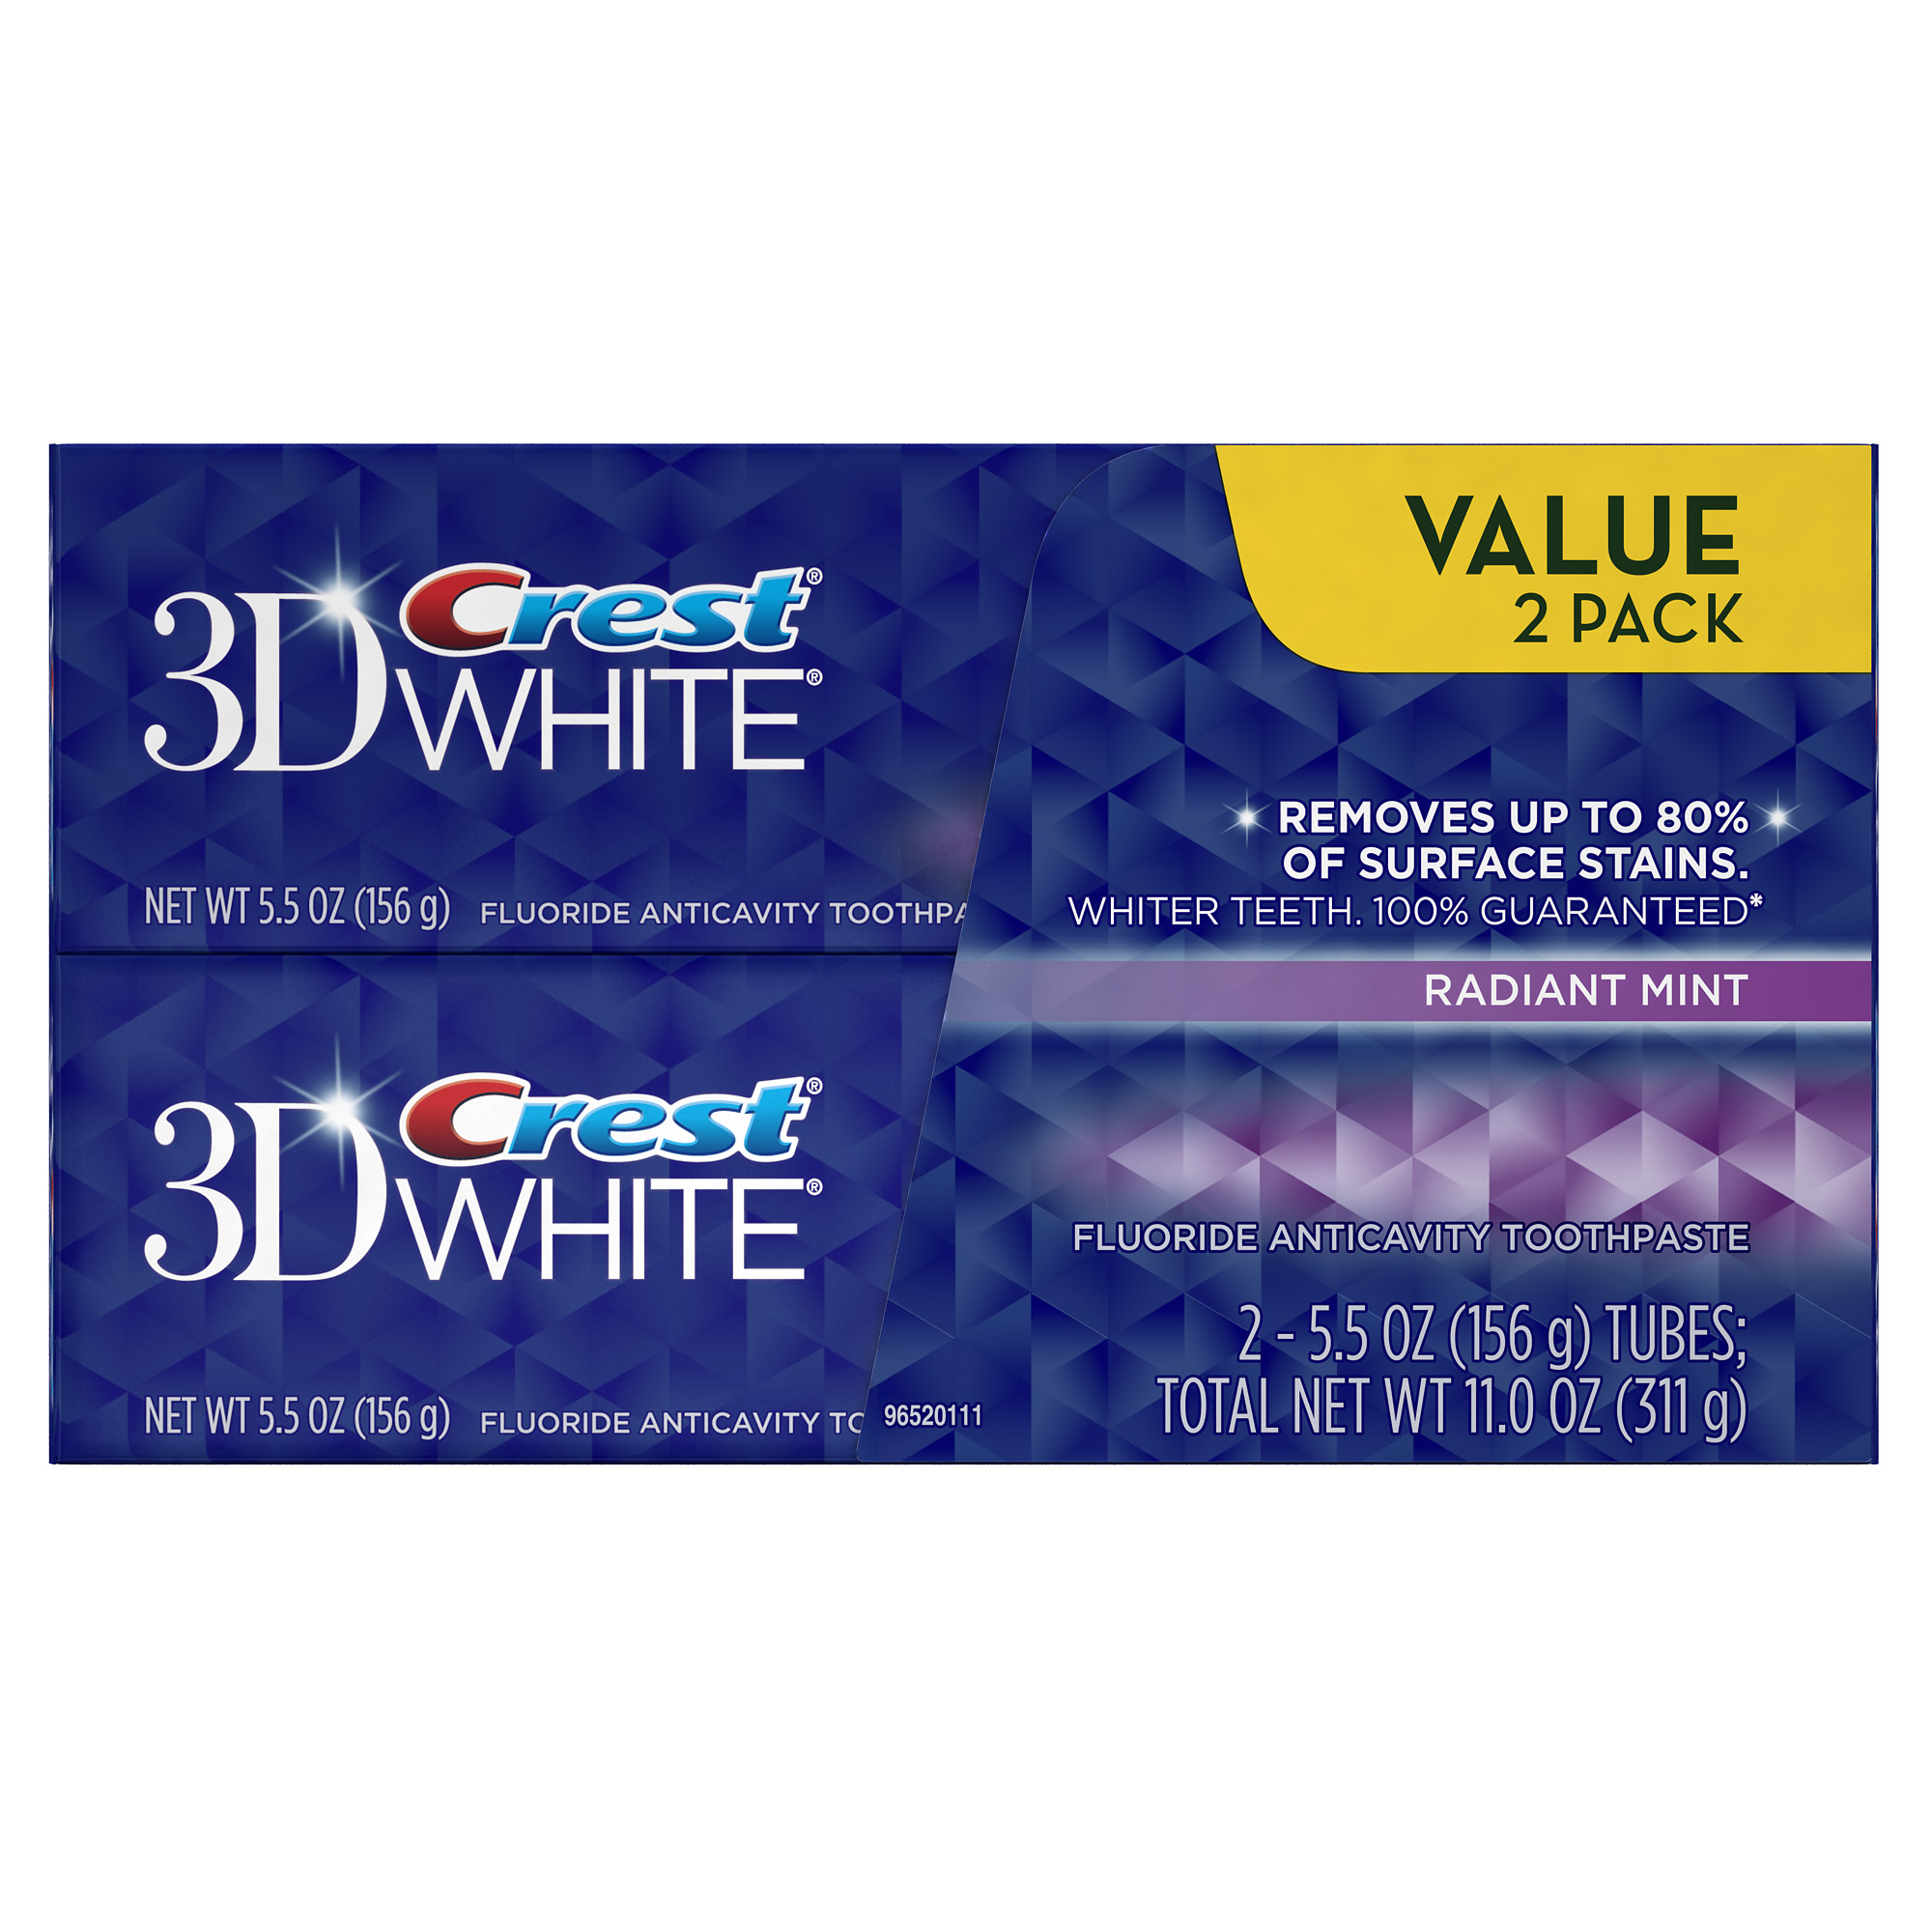 Crest 3D White Radiant Mint Flavor Whitening Toothpaste Twin Pack 11 Oz